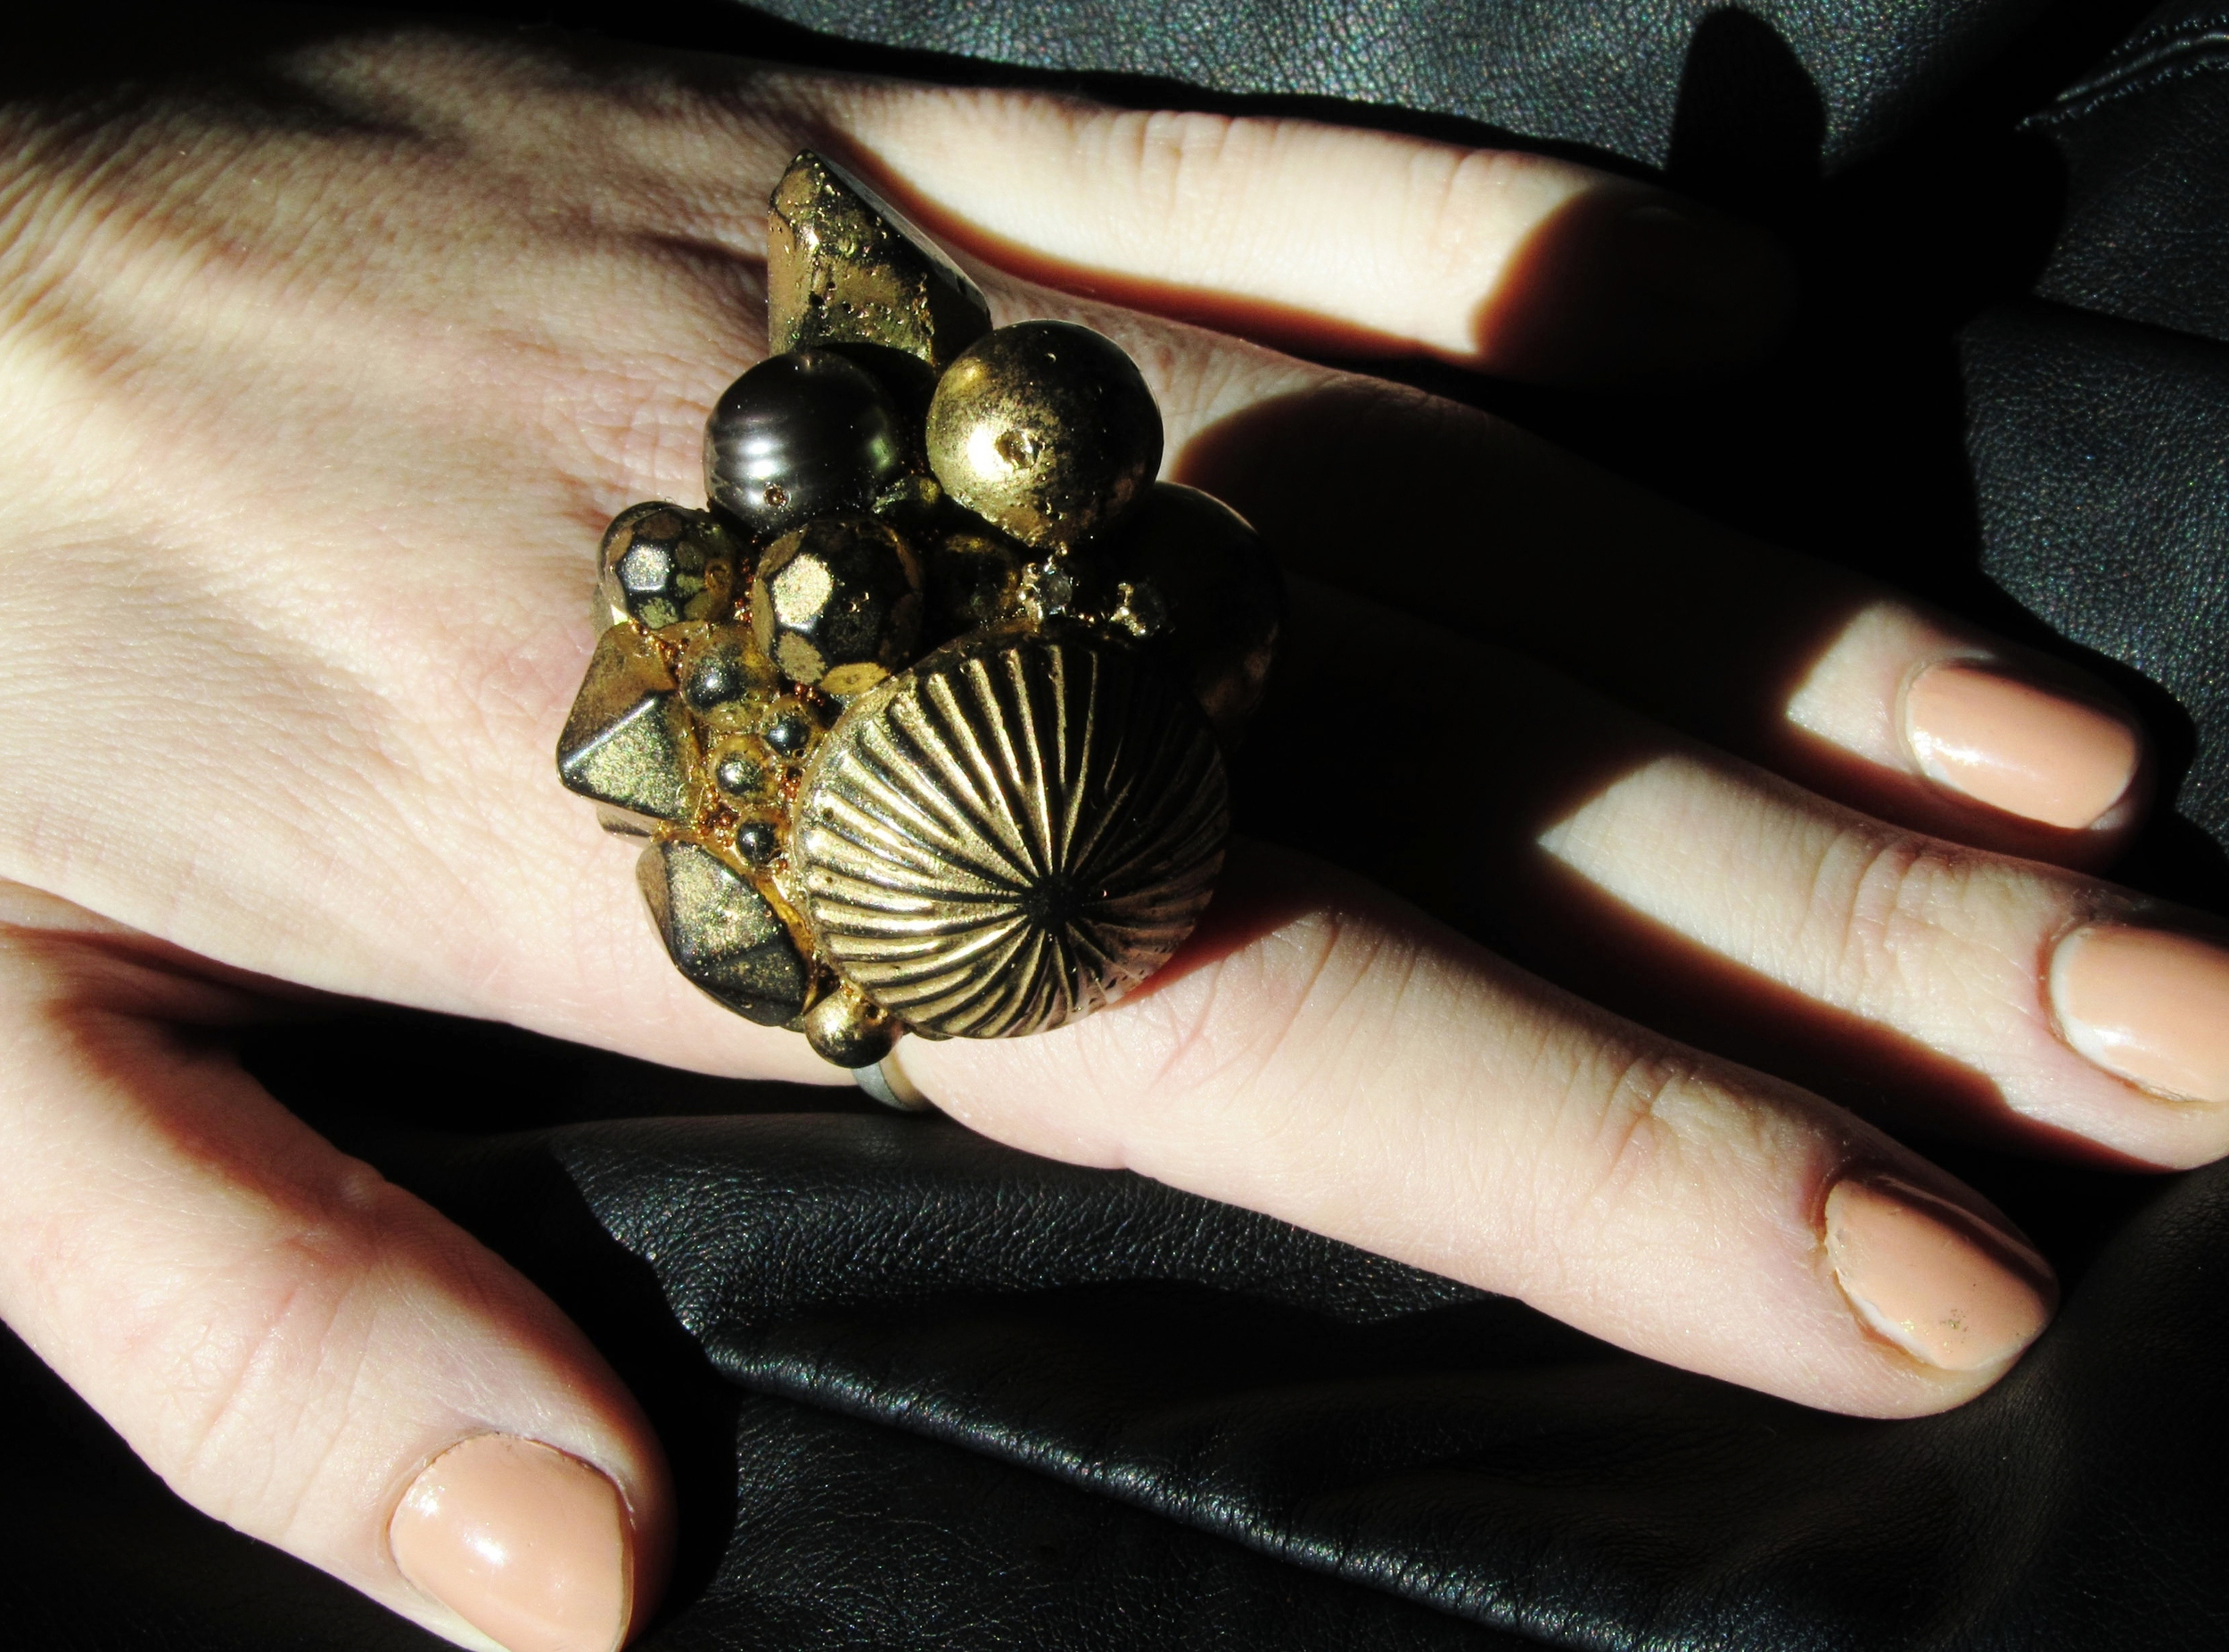 Diamonds & pearls encrusted ring inspired by lost treasures of the deep